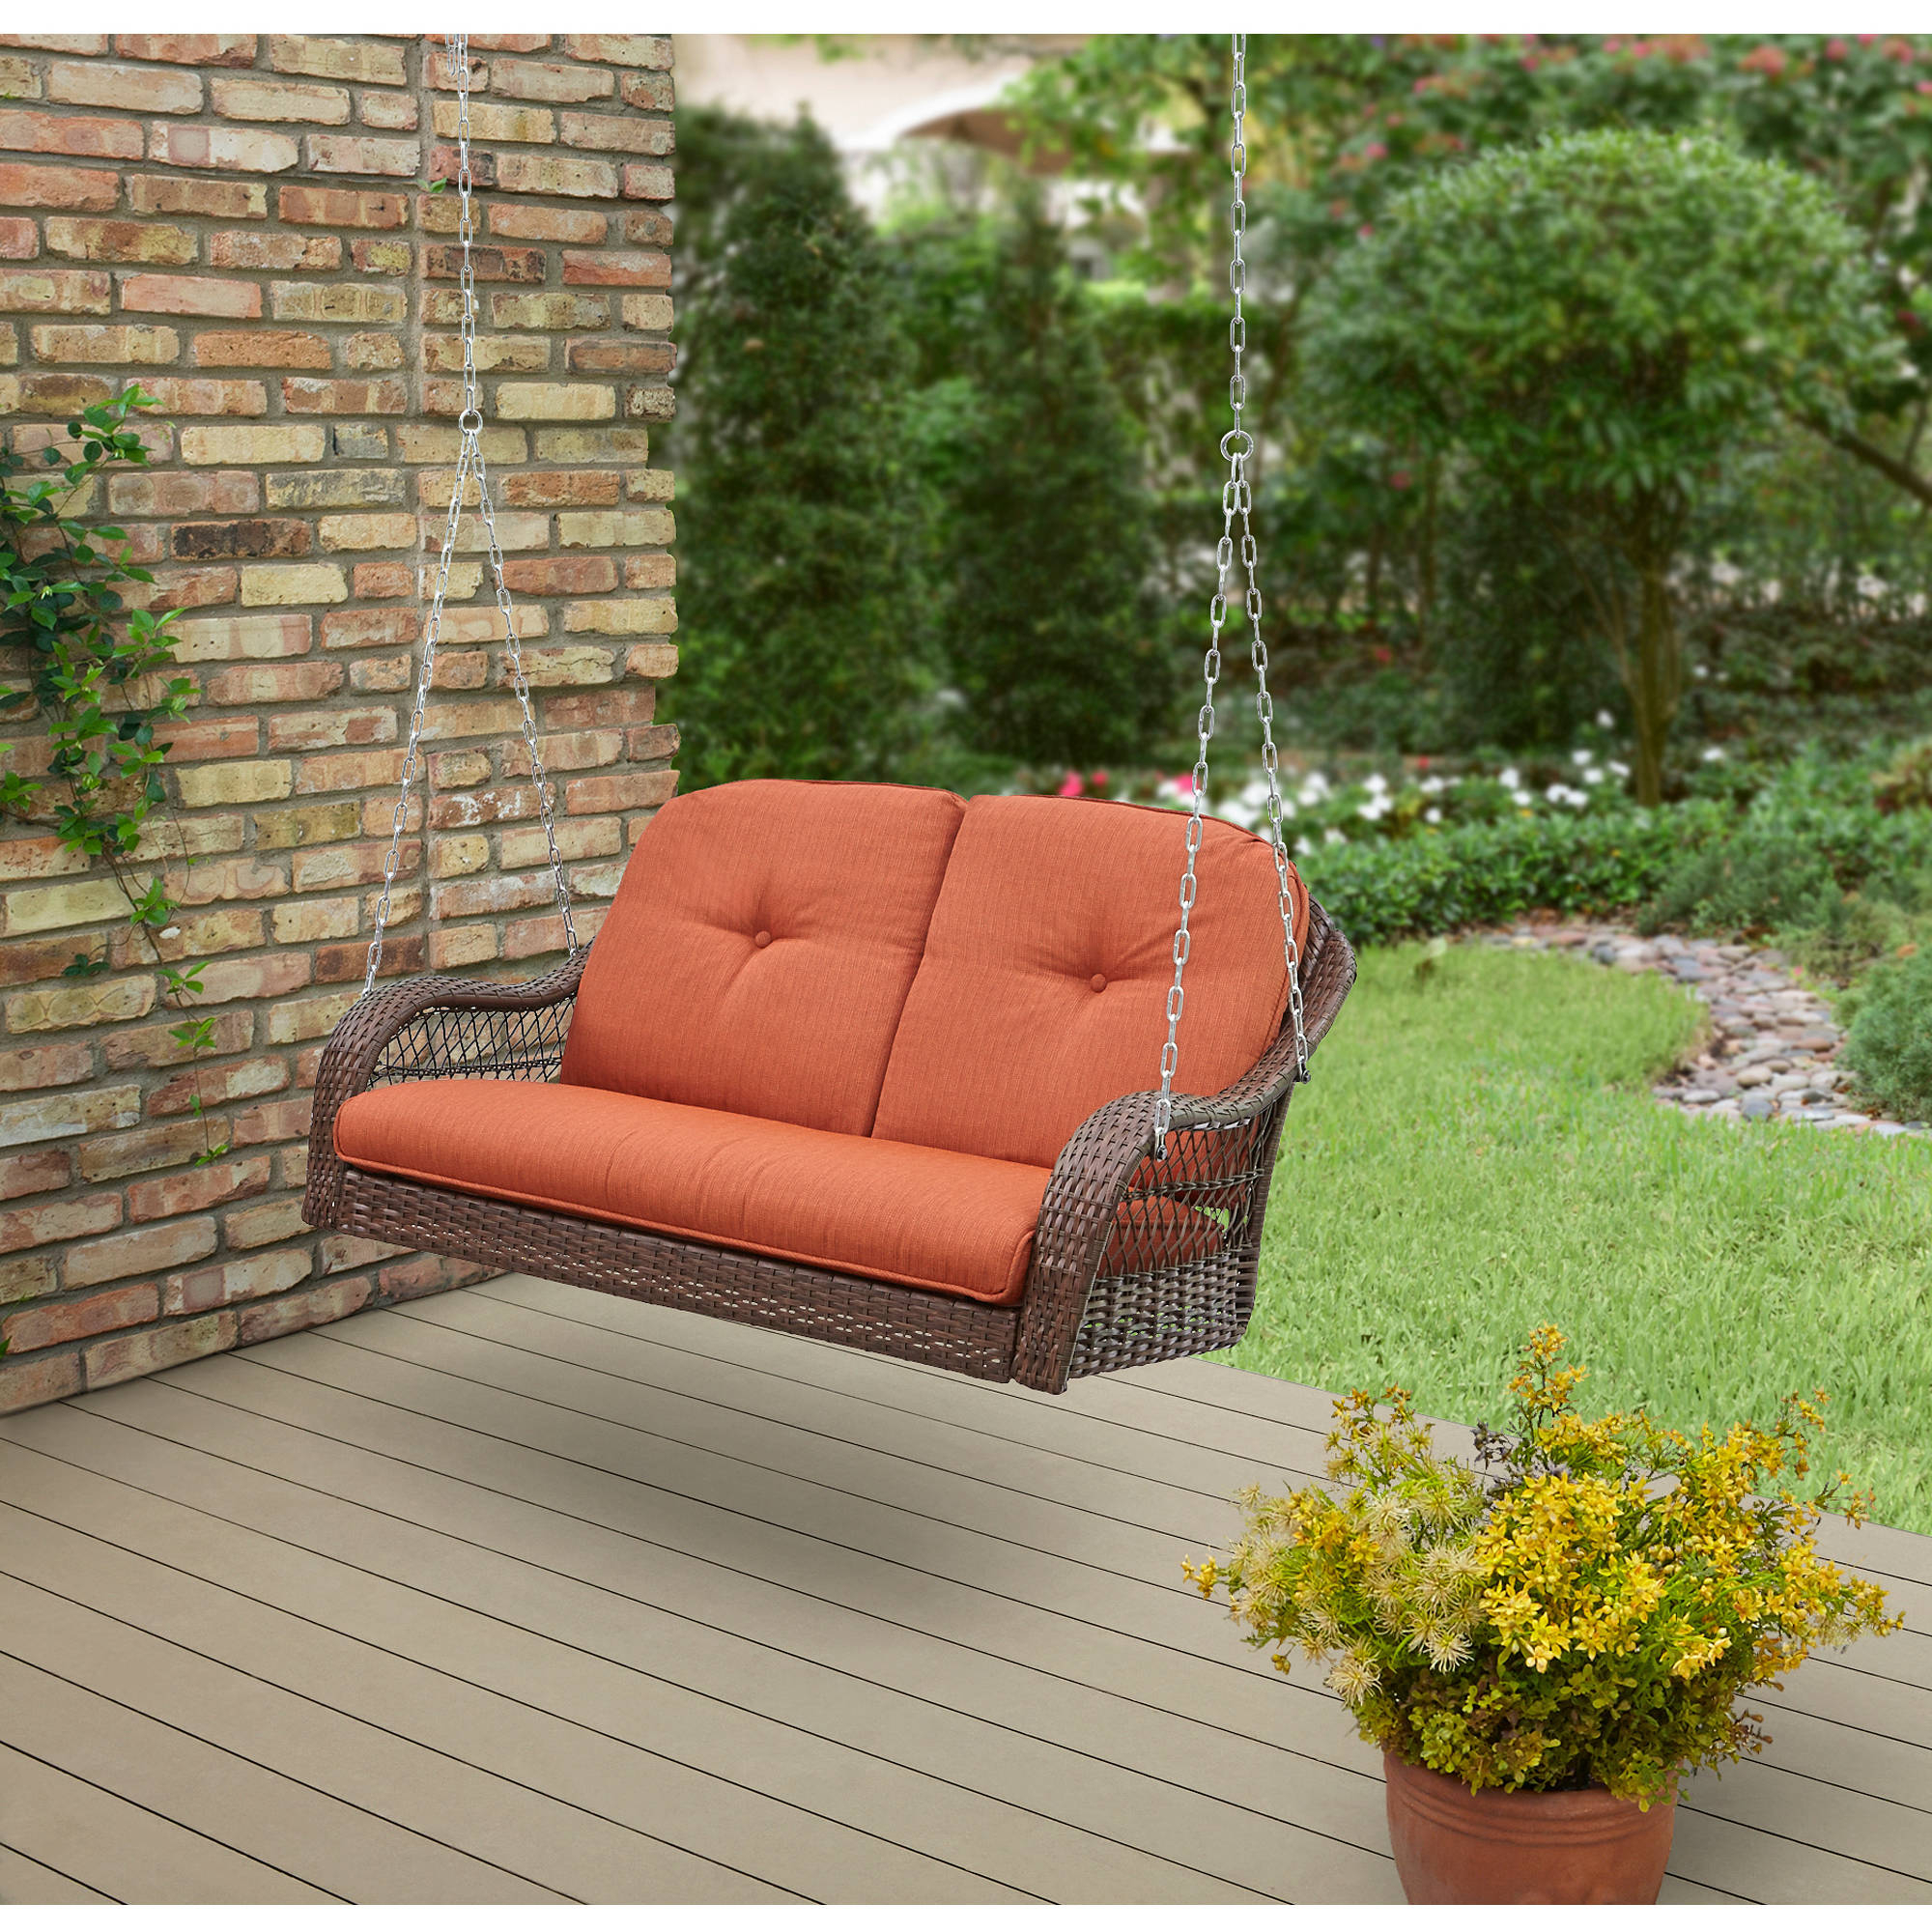 2020 2 Person Loveseat Chair Patio Porch Swings With Rocker Intended For Better Homes & Gardens Azalea Ridge 2 Person Outdoor Swing, Vermillion – Walmart (Gallery 23 of 25)